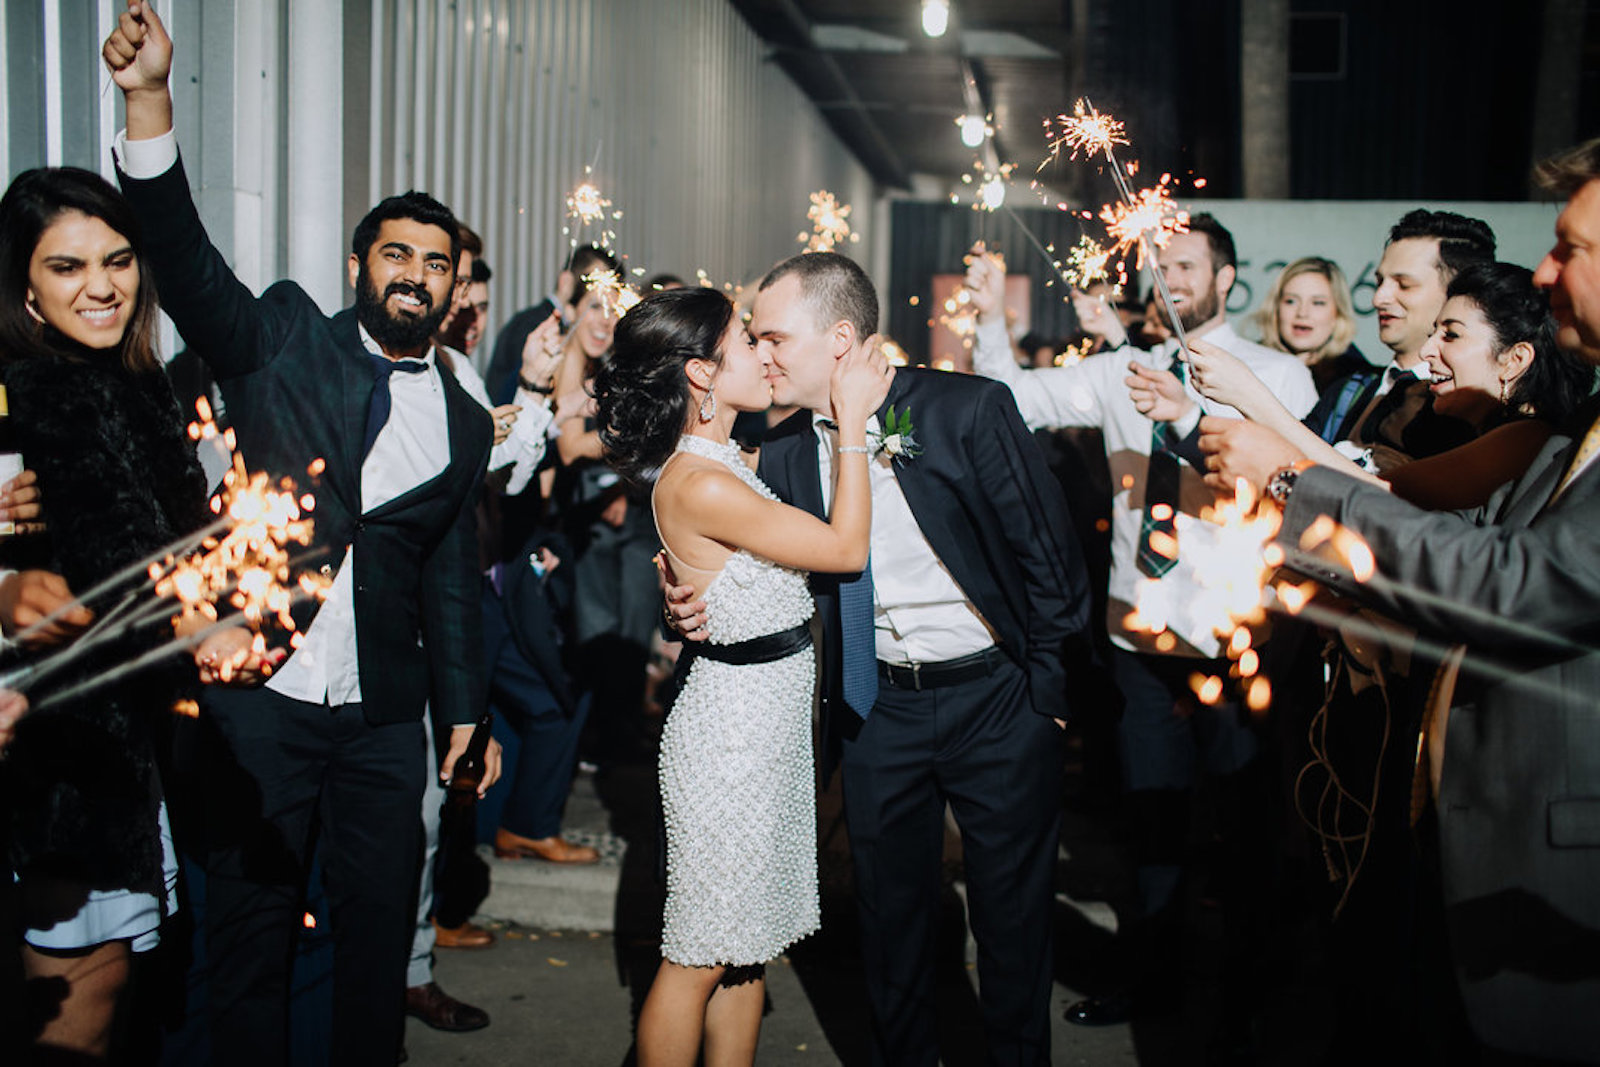 bride and groom kissing with guests cheering and holding sparklers